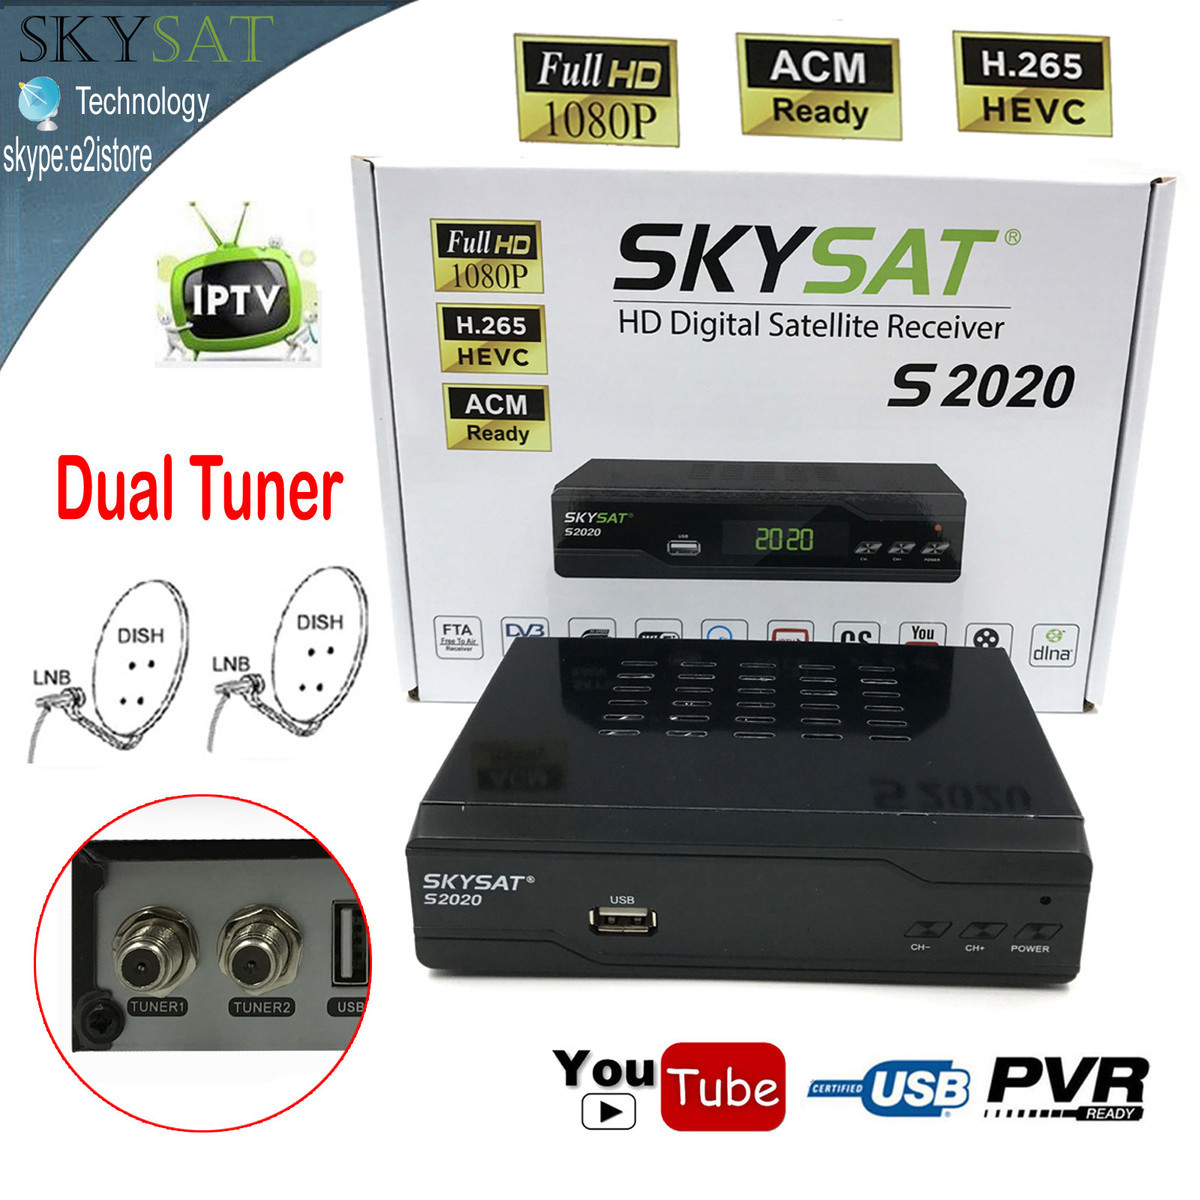 Skysat Dual Dish Twin Tuner H.265 AVC MPEG-4 Digital Satellite Receiver ACM Support IKS SKS ACM/VCM/CCM IPTV VOD with LAN Wifi free forever nusky n3gsi nusky n3gst south america satellite receiver with iks sks free better than tocomfree s929 plus